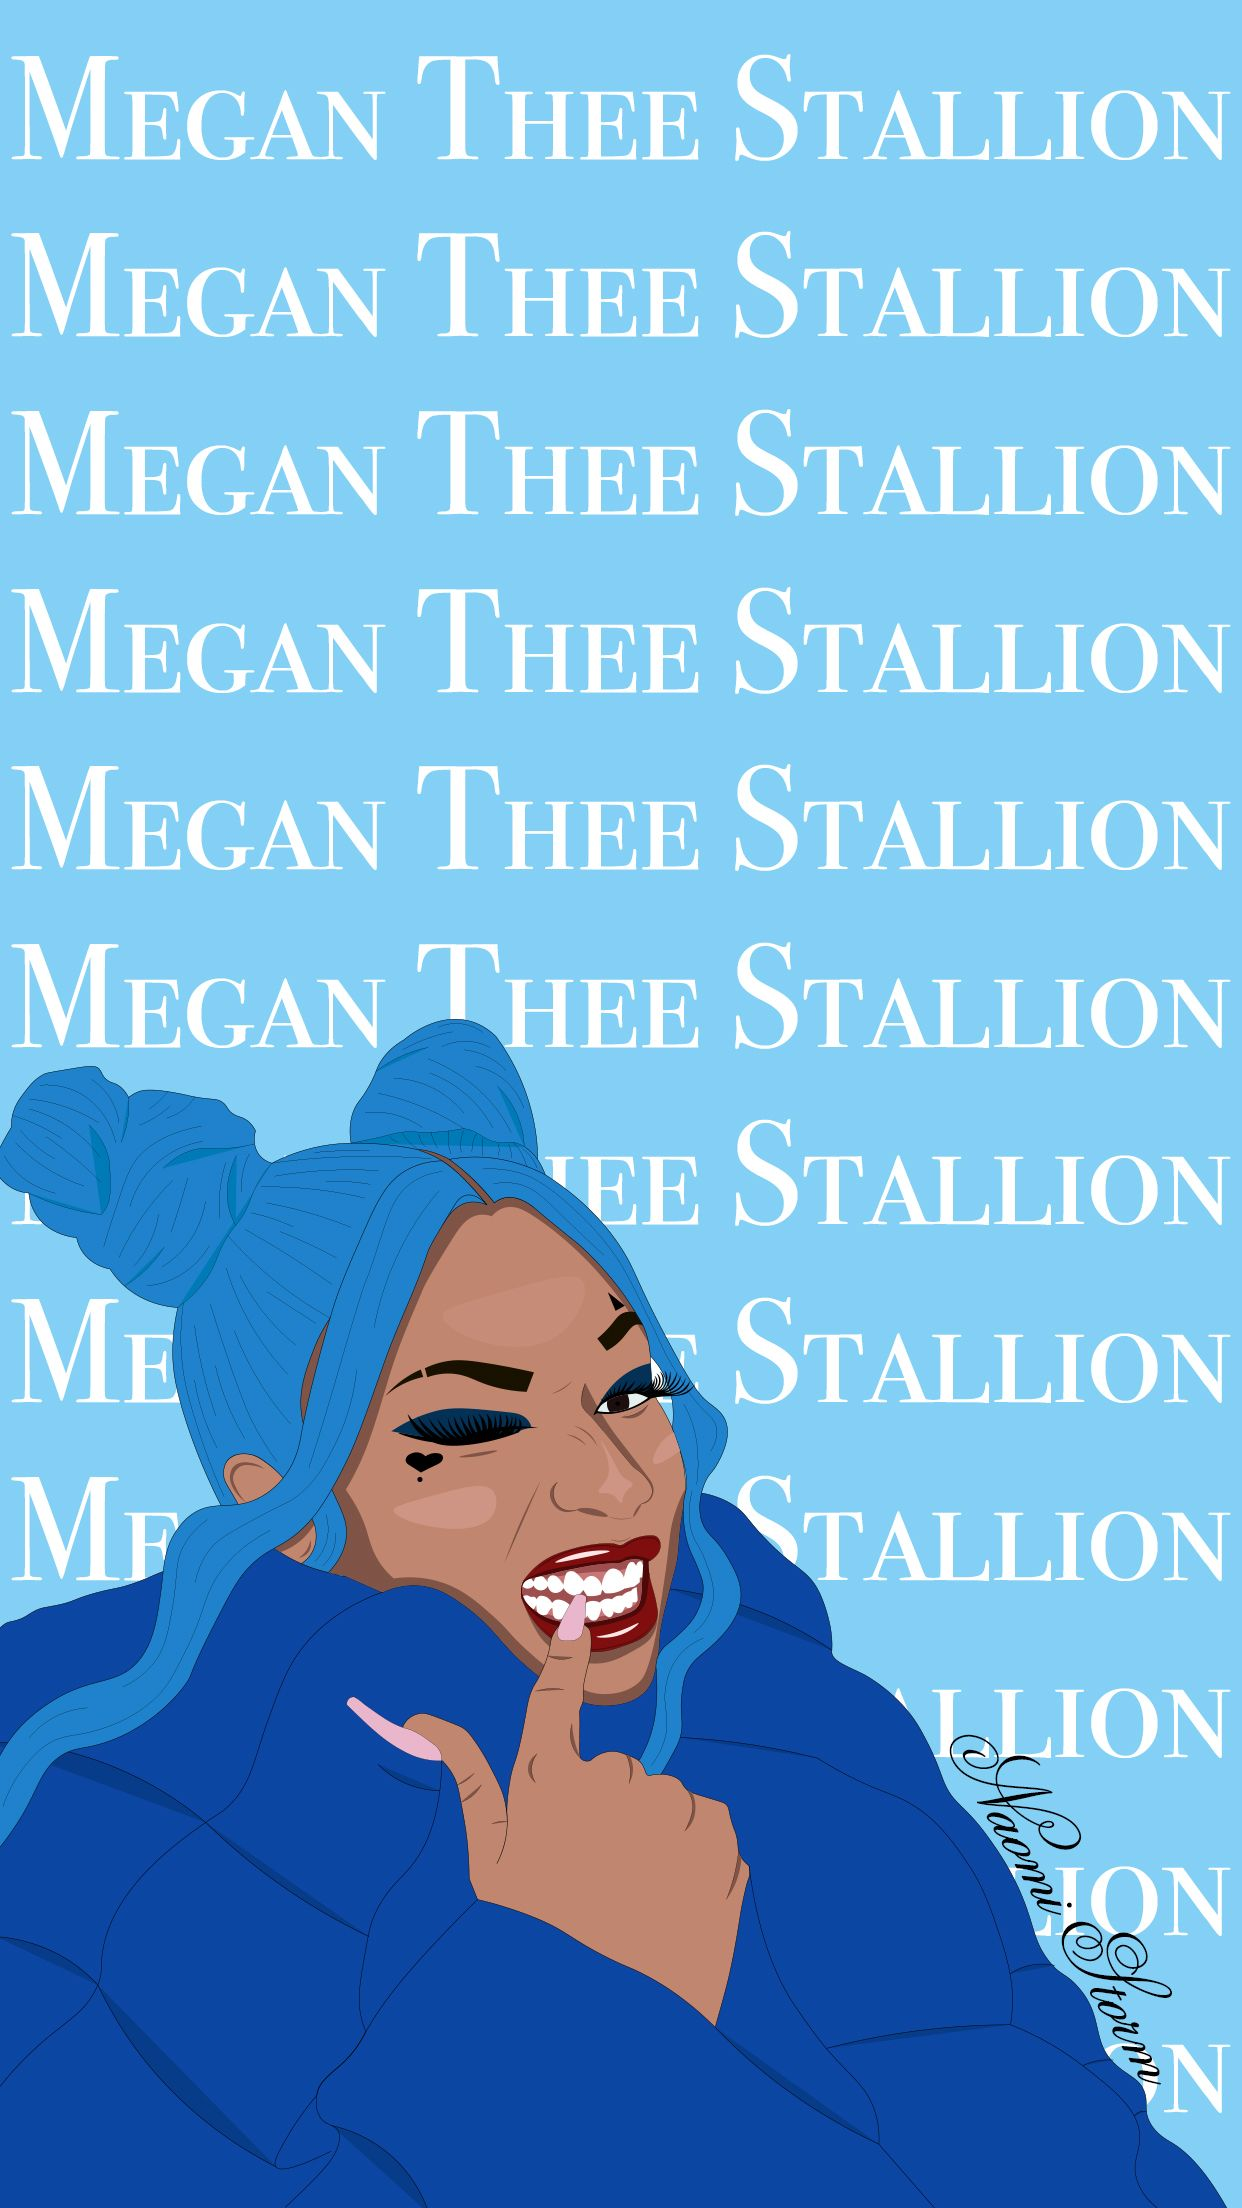 Megan Thee Stallion In 2020 Cute Disney Quotes Colourful Wallpaper Iphone Rapper Wallpaper Iphone